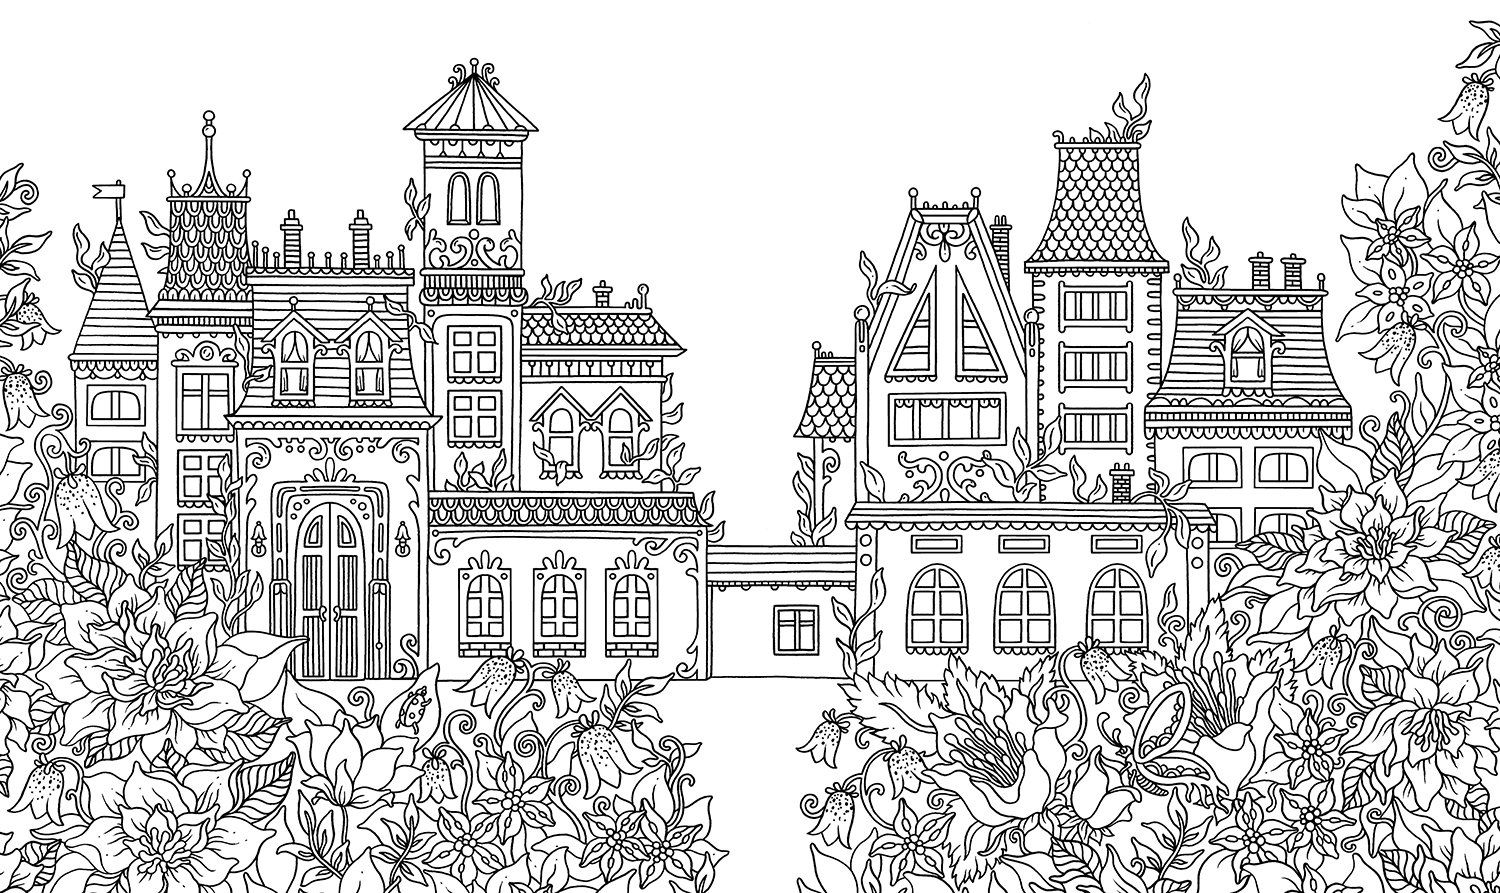 Jewelry Box Coloring Book Published In Sweden As Smyckeskrinet Hanna Karlzon 9781423649861 A Coloring Books Vintage Coloring Books Mandala Coloring Books